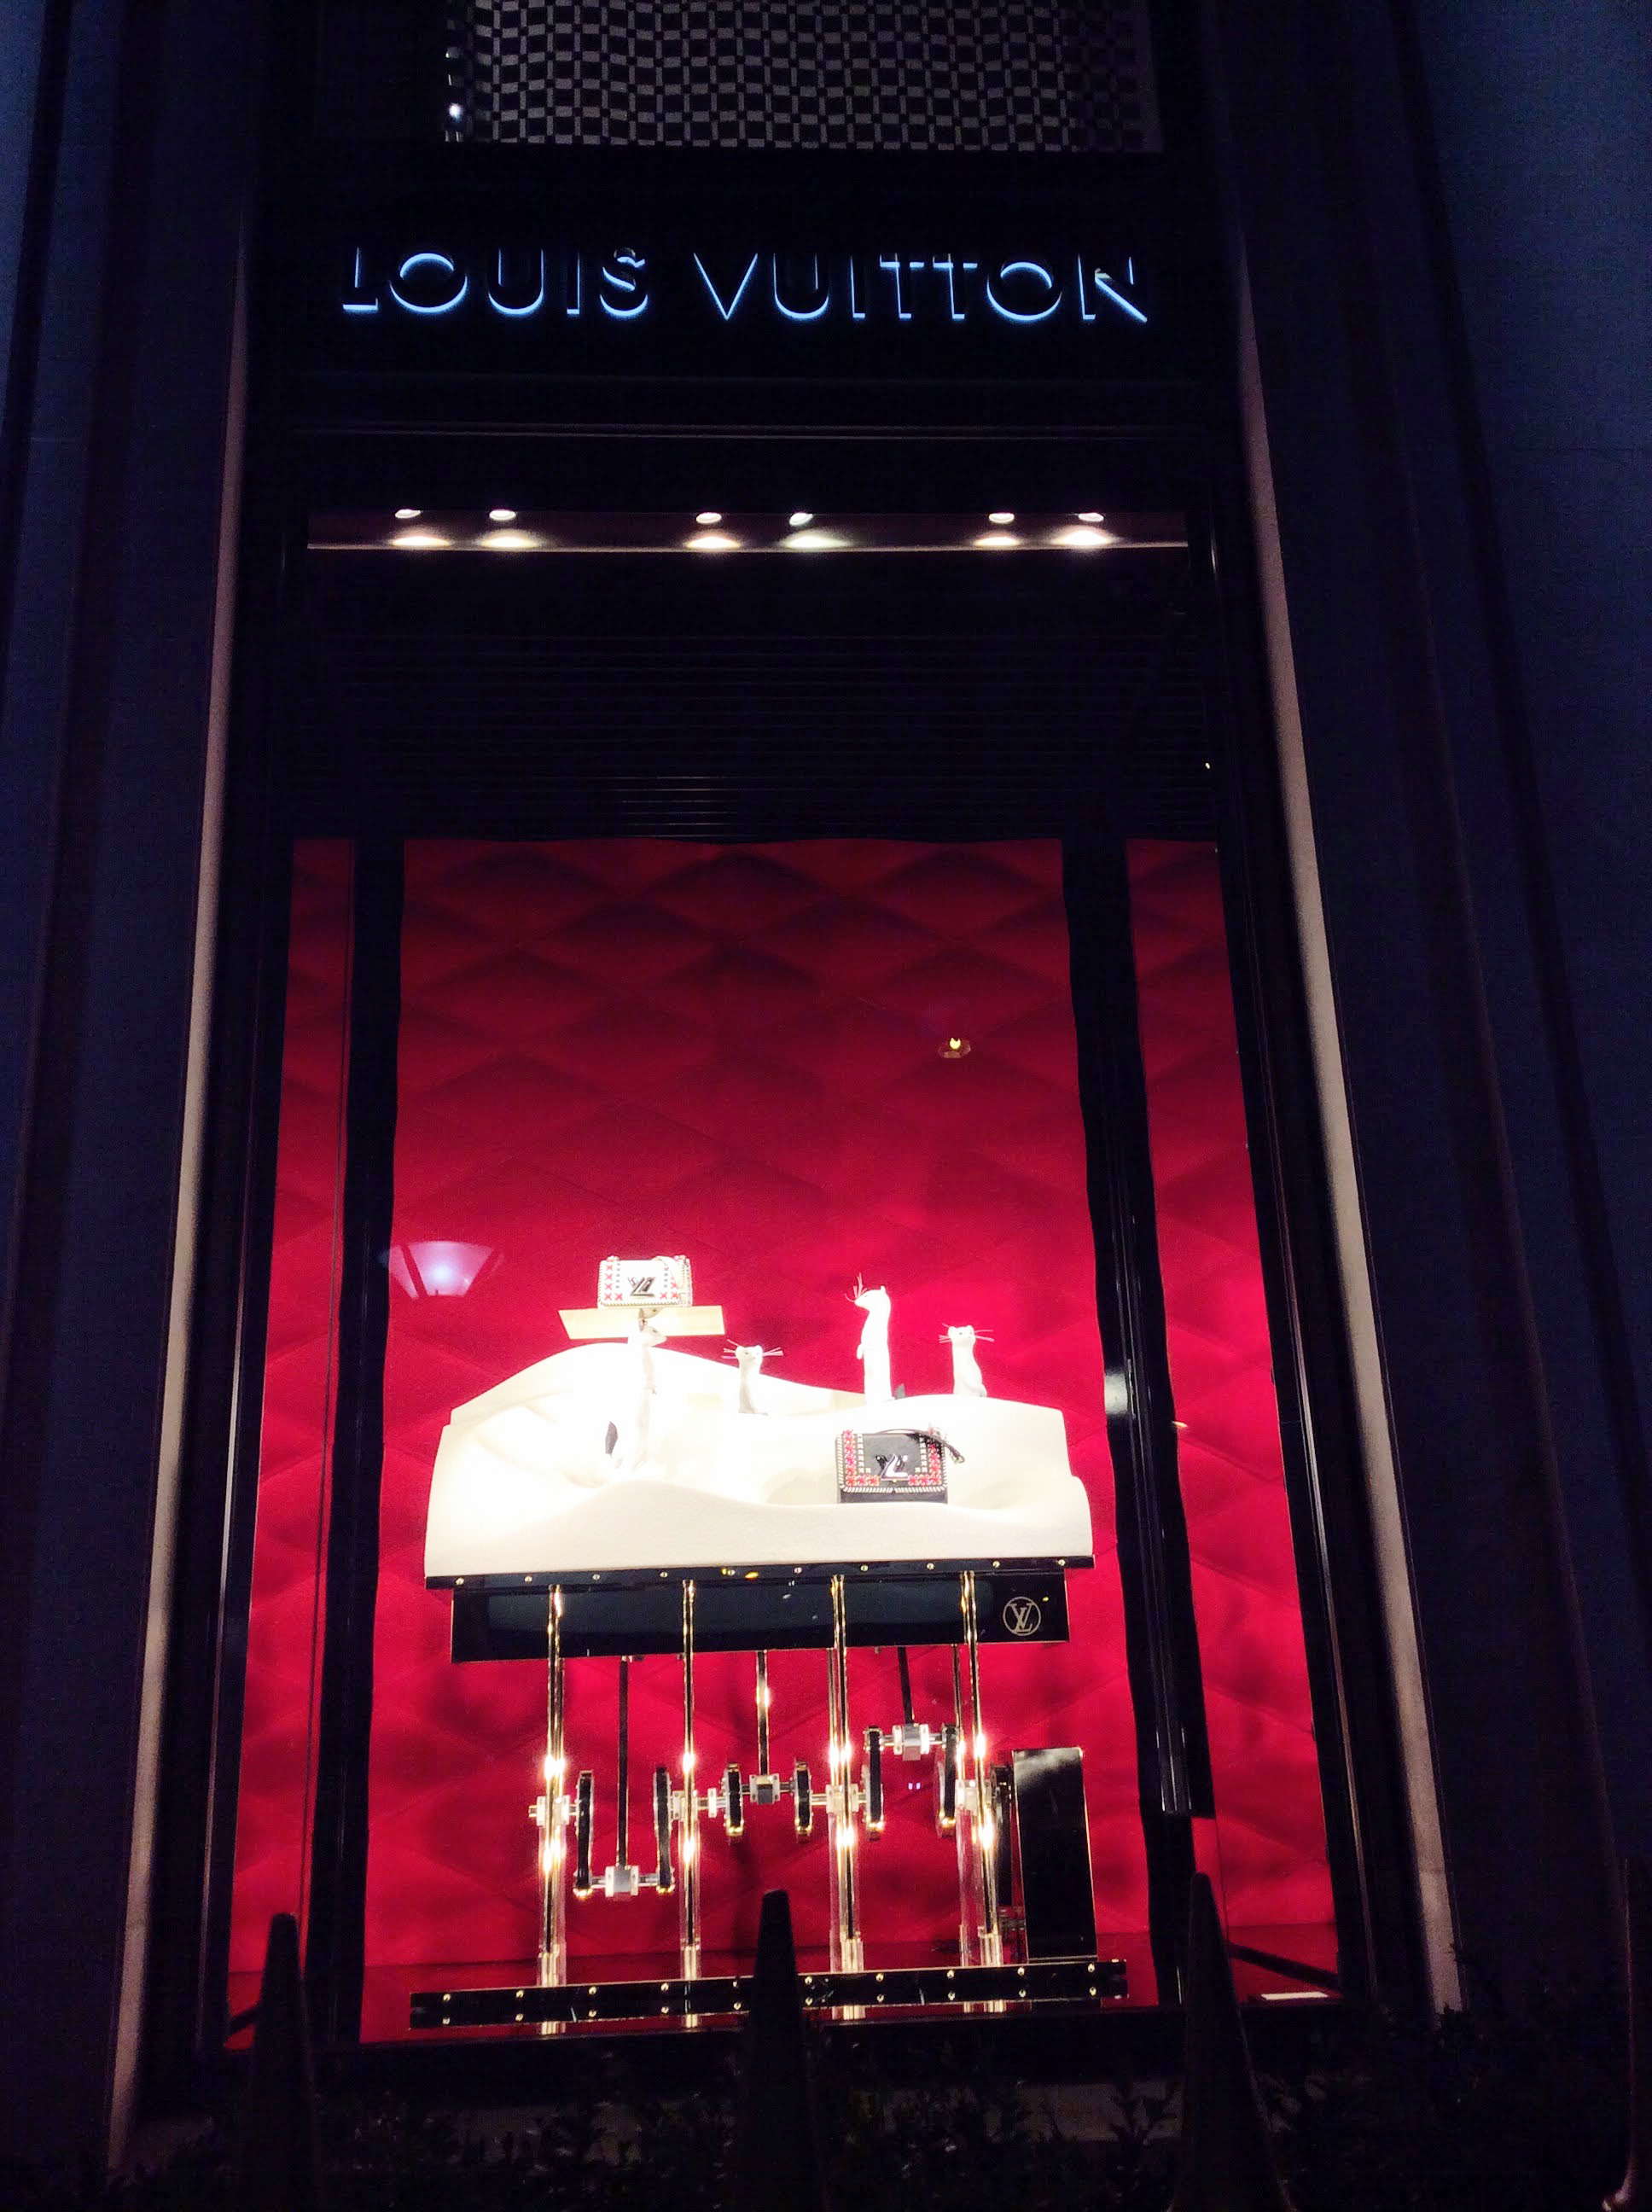 Avenue Montaigne Paris Fashion Windows - Louis Vuitton